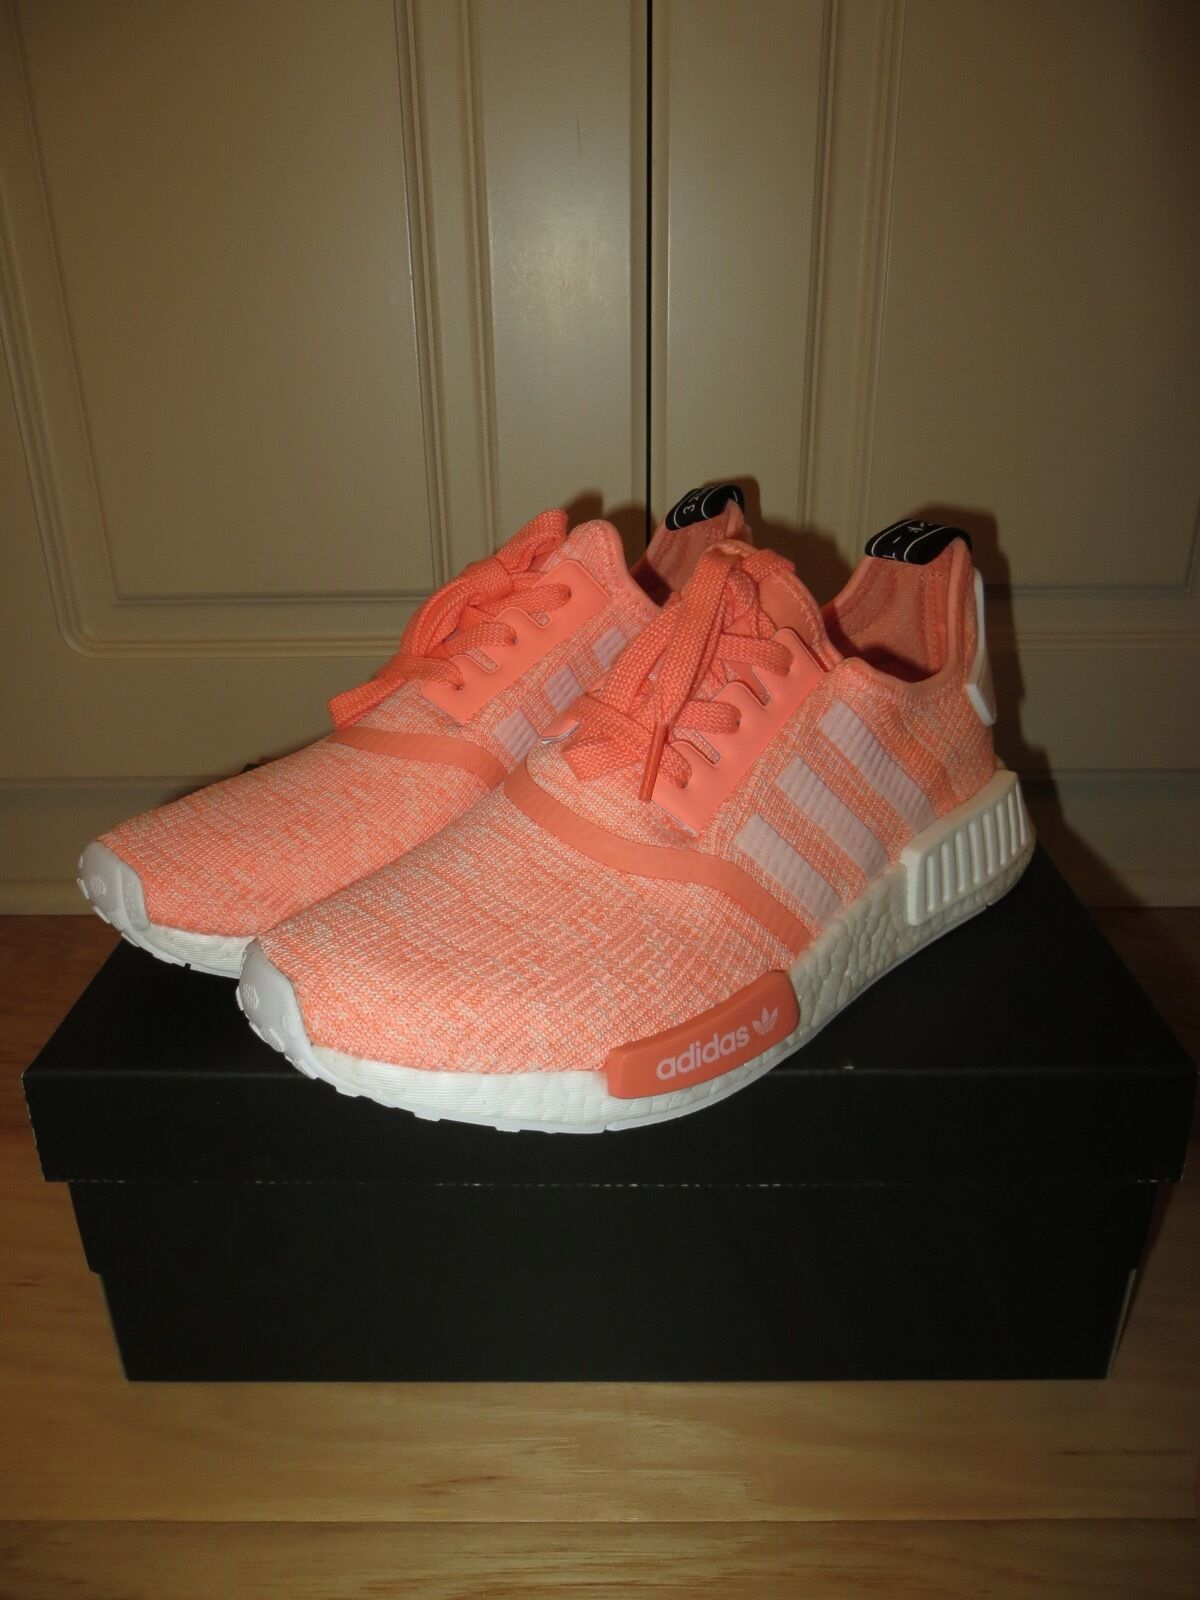 ADIDAS NMD R1 RUNNER SUN GLOW SALMON PINK WHITE RUNNING SHOES BY3034 9 9.5 10